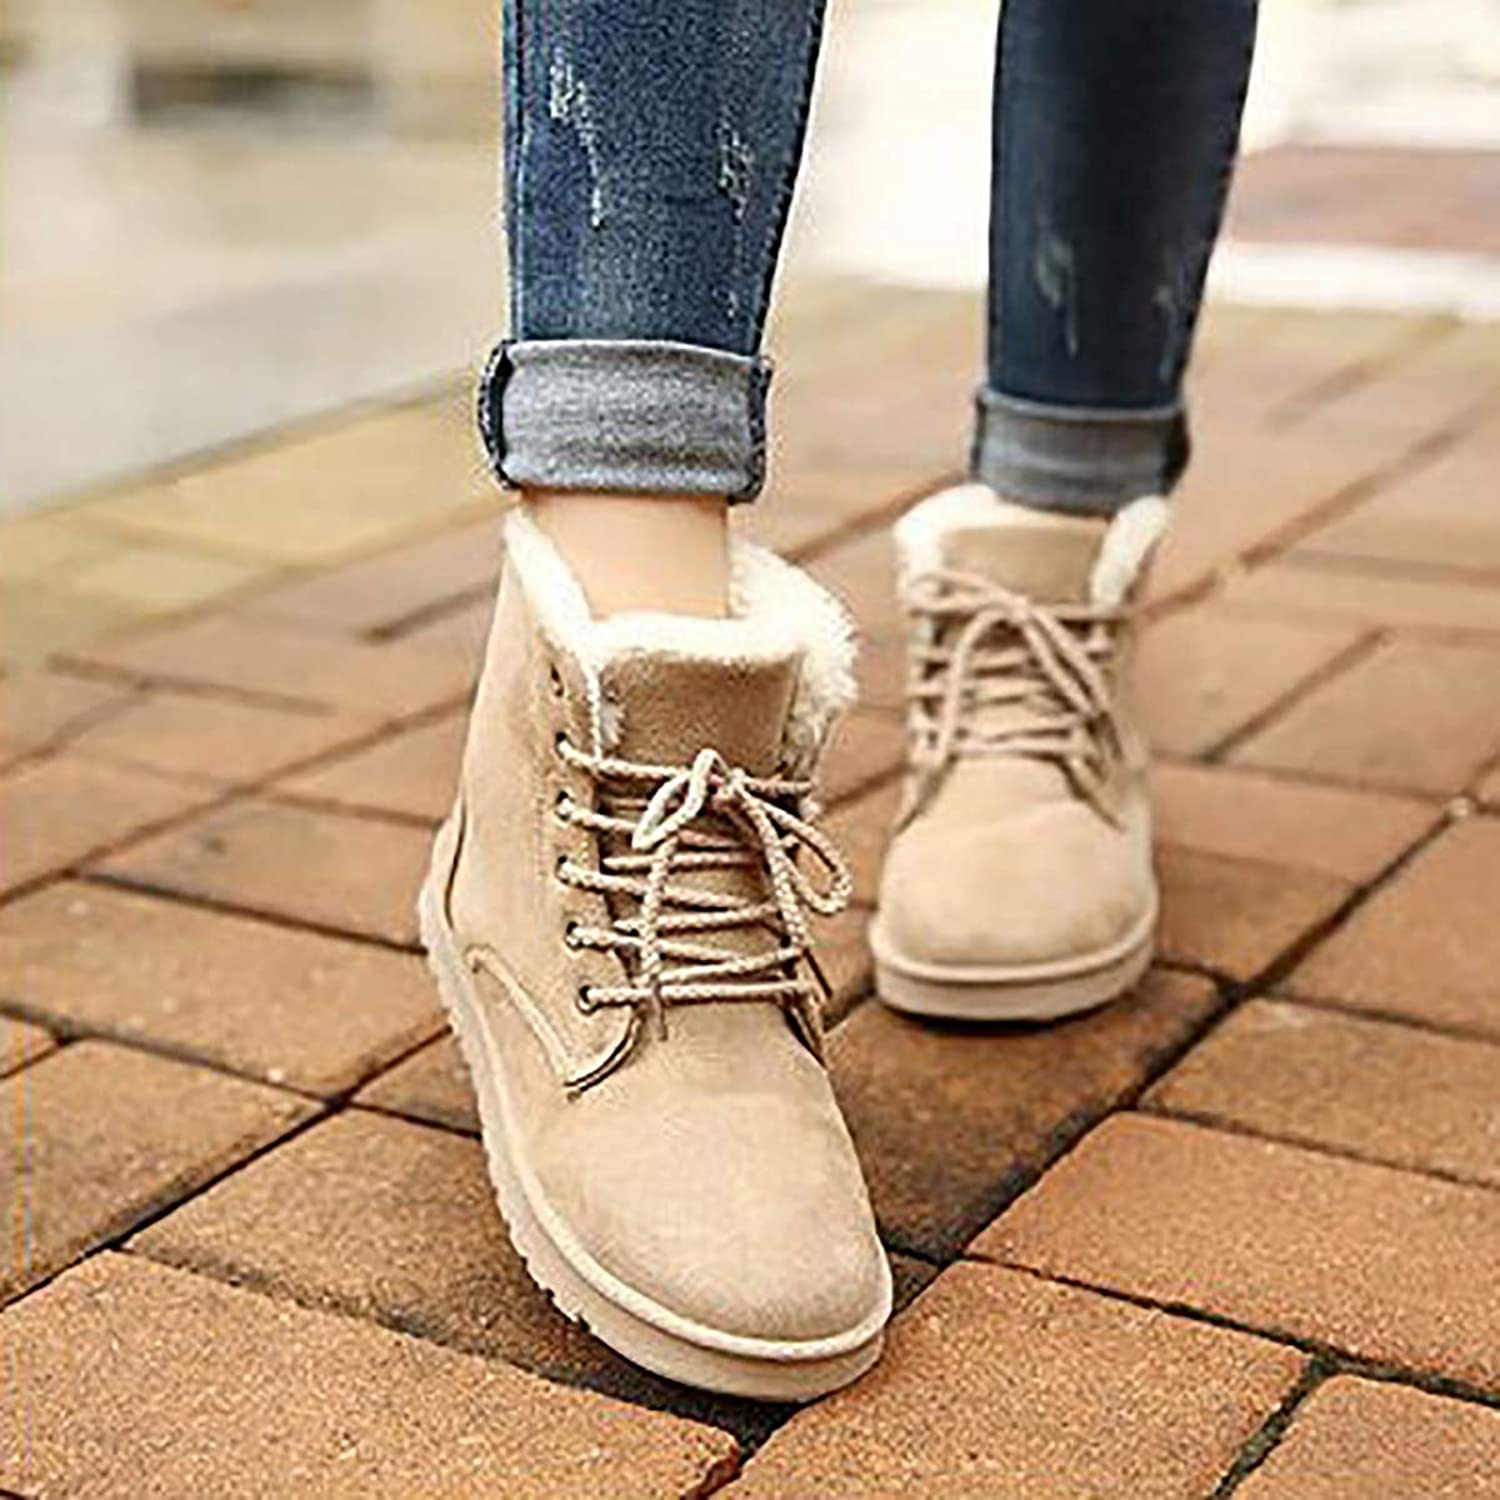 Winter Snow Boots Street Martin Boots with Lace, Large Size Cotton Women's shoes to Keep Warm,Beige,37